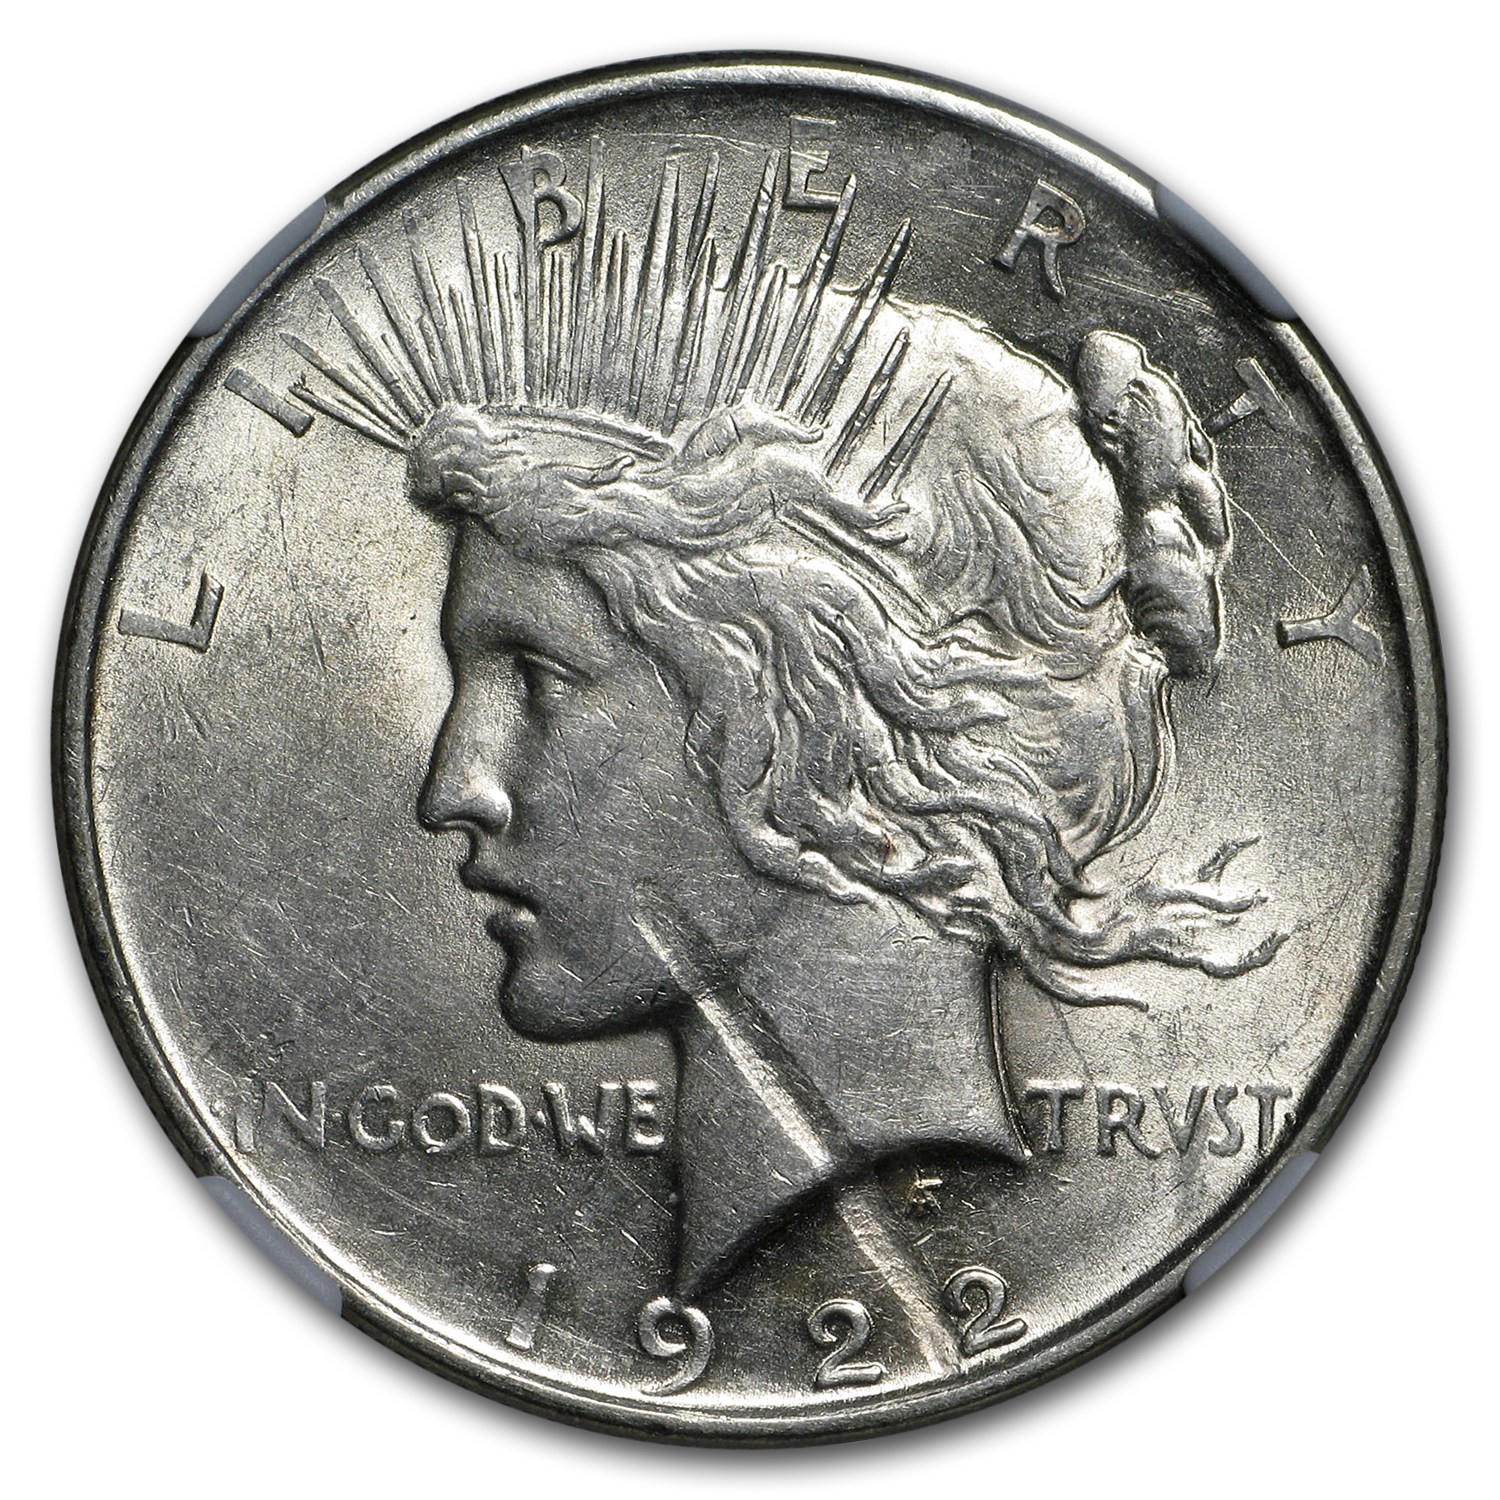 1922 Peace Dollar - AU-53 - NGC Obverse Struck Thru Mint Error